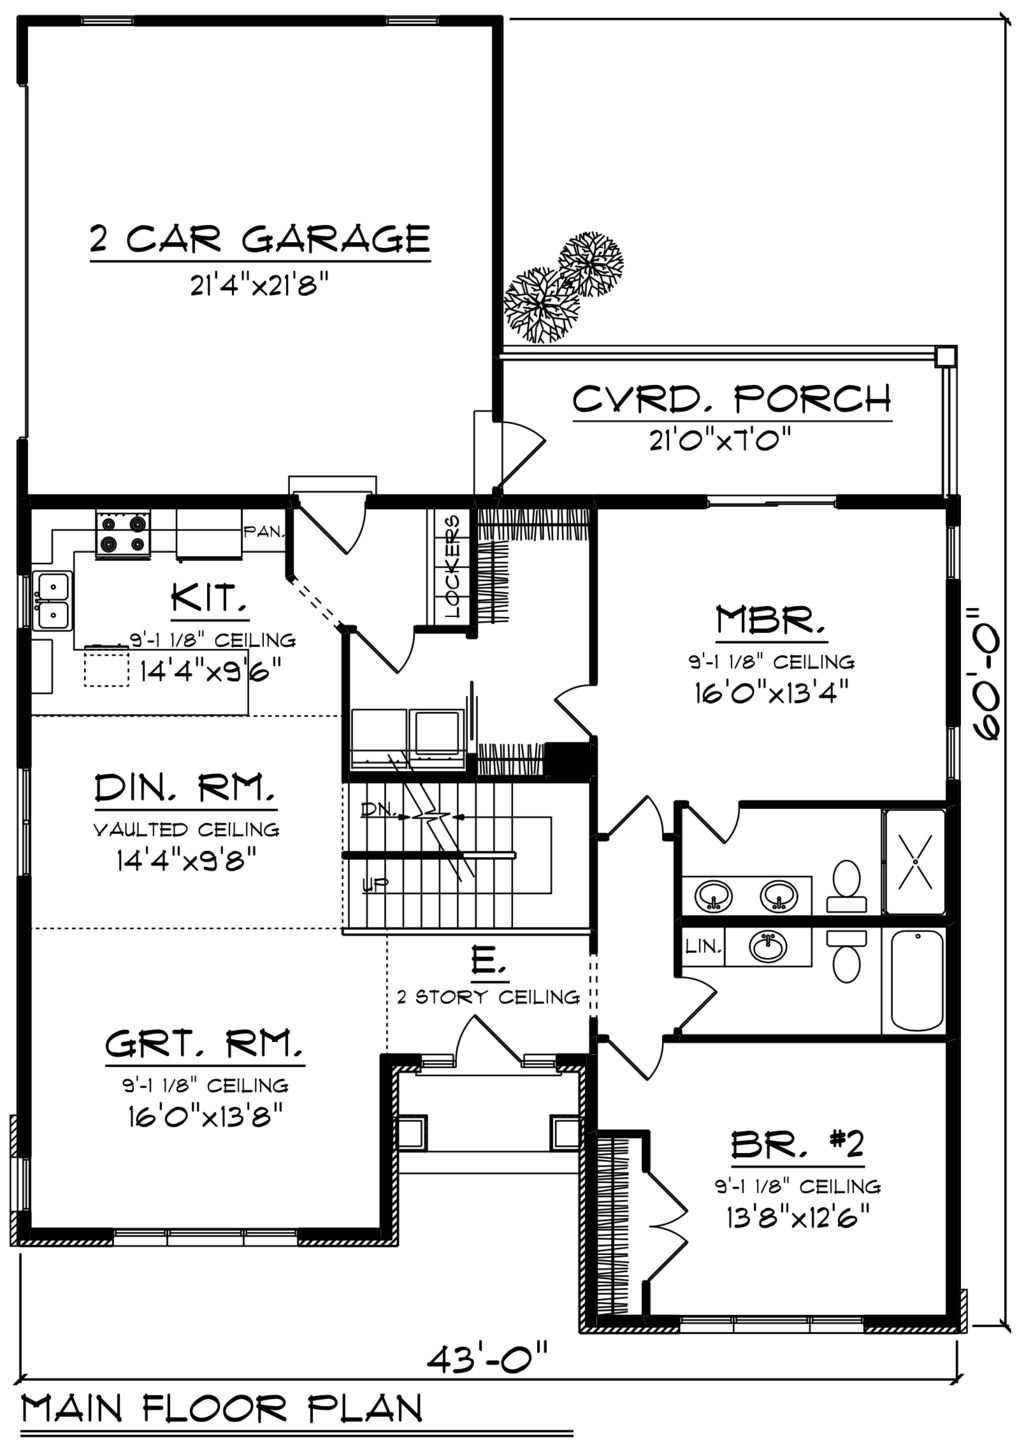 Ranch Style House Plan 2 Beds 2 Baths 1743 Sq Ft Plan 70 1242 Floor Plans Floor Plan Design House Plans